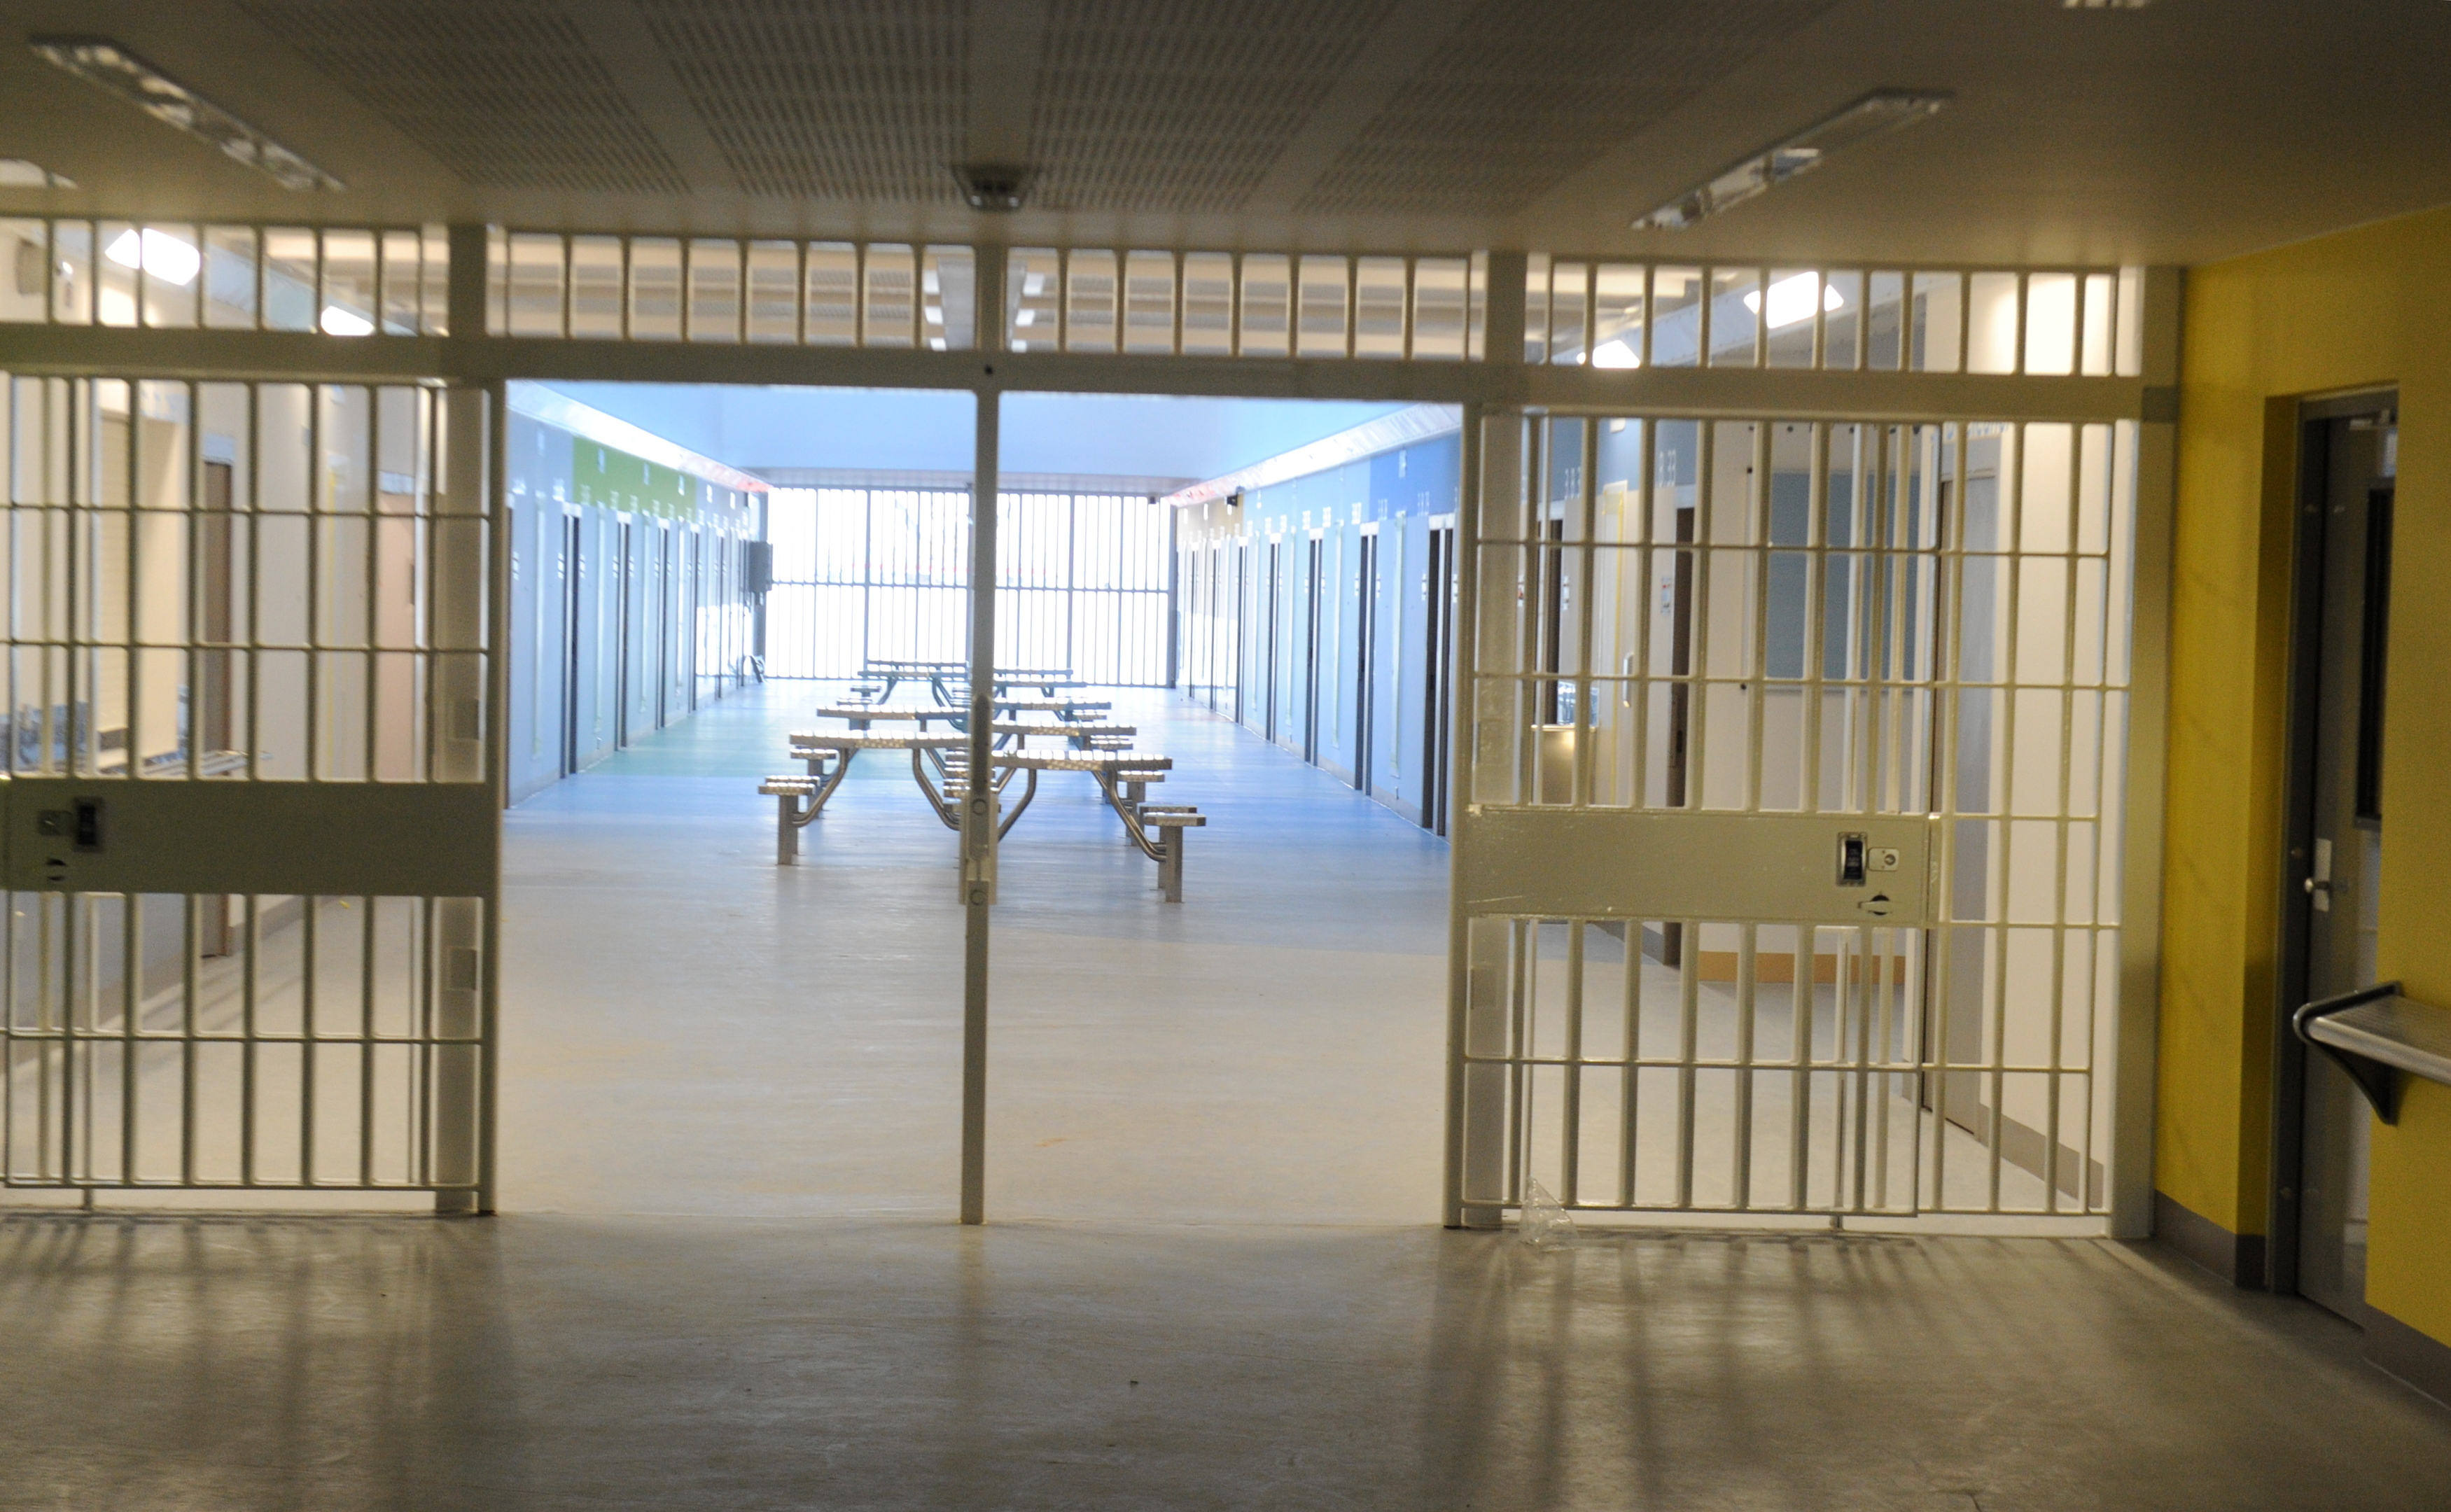 A wide range of items have been used to attack members of staff at prisons in the N-east.